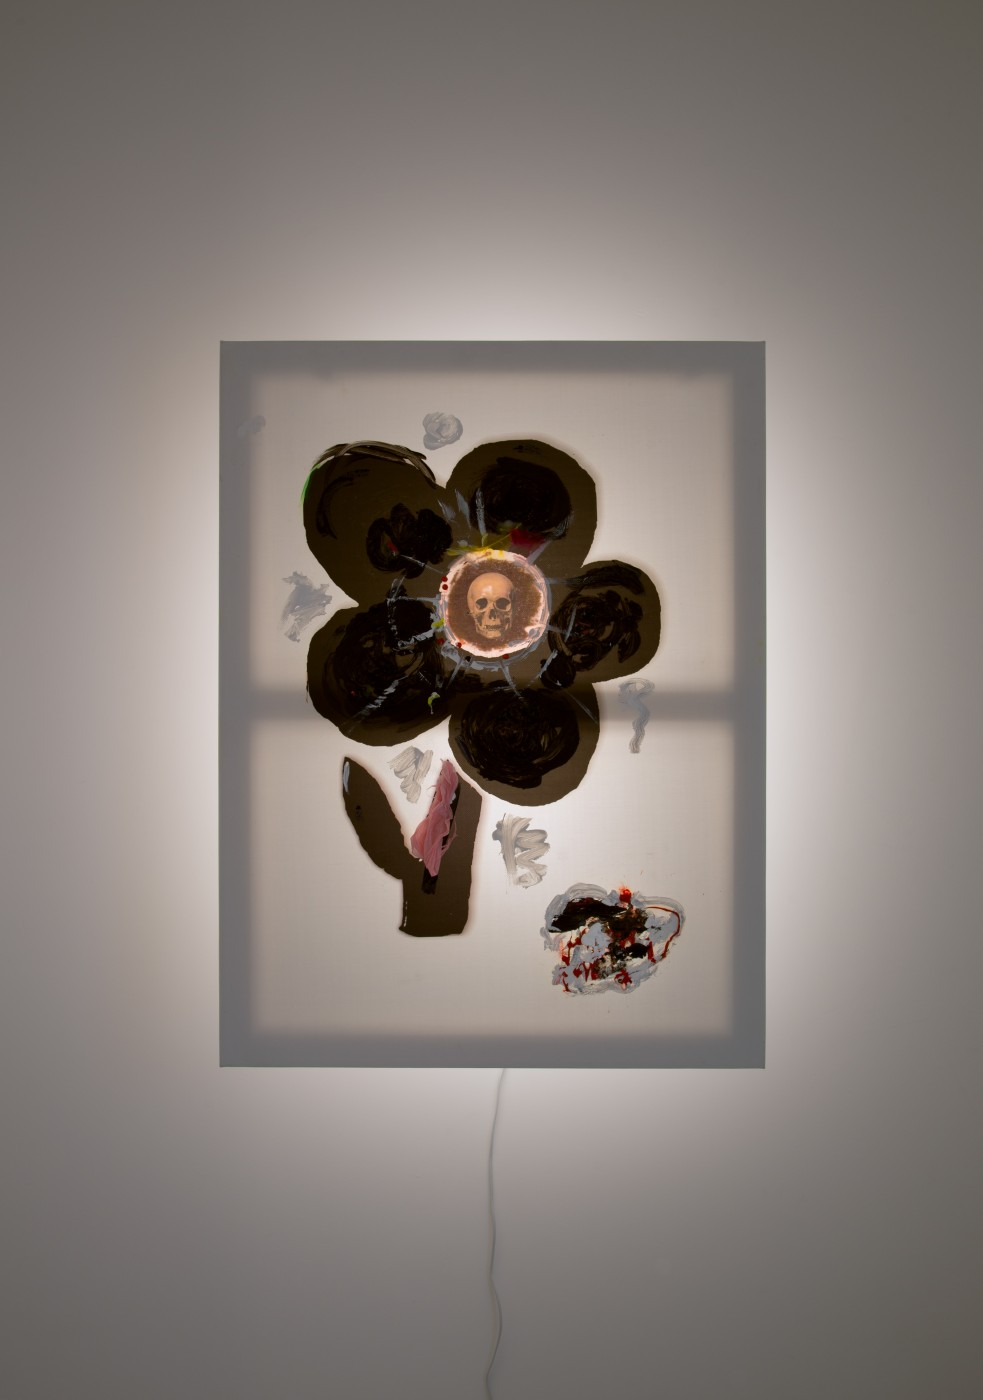 GOLD  Flower</I>, 2017 Acrylic and inkjet on vinyl, feathers, plastic bags, wood, steel, LED light 100 x 75 x 21 cm / 39.3 x 29.5 x 8.2 in  JOHN RUSSELL